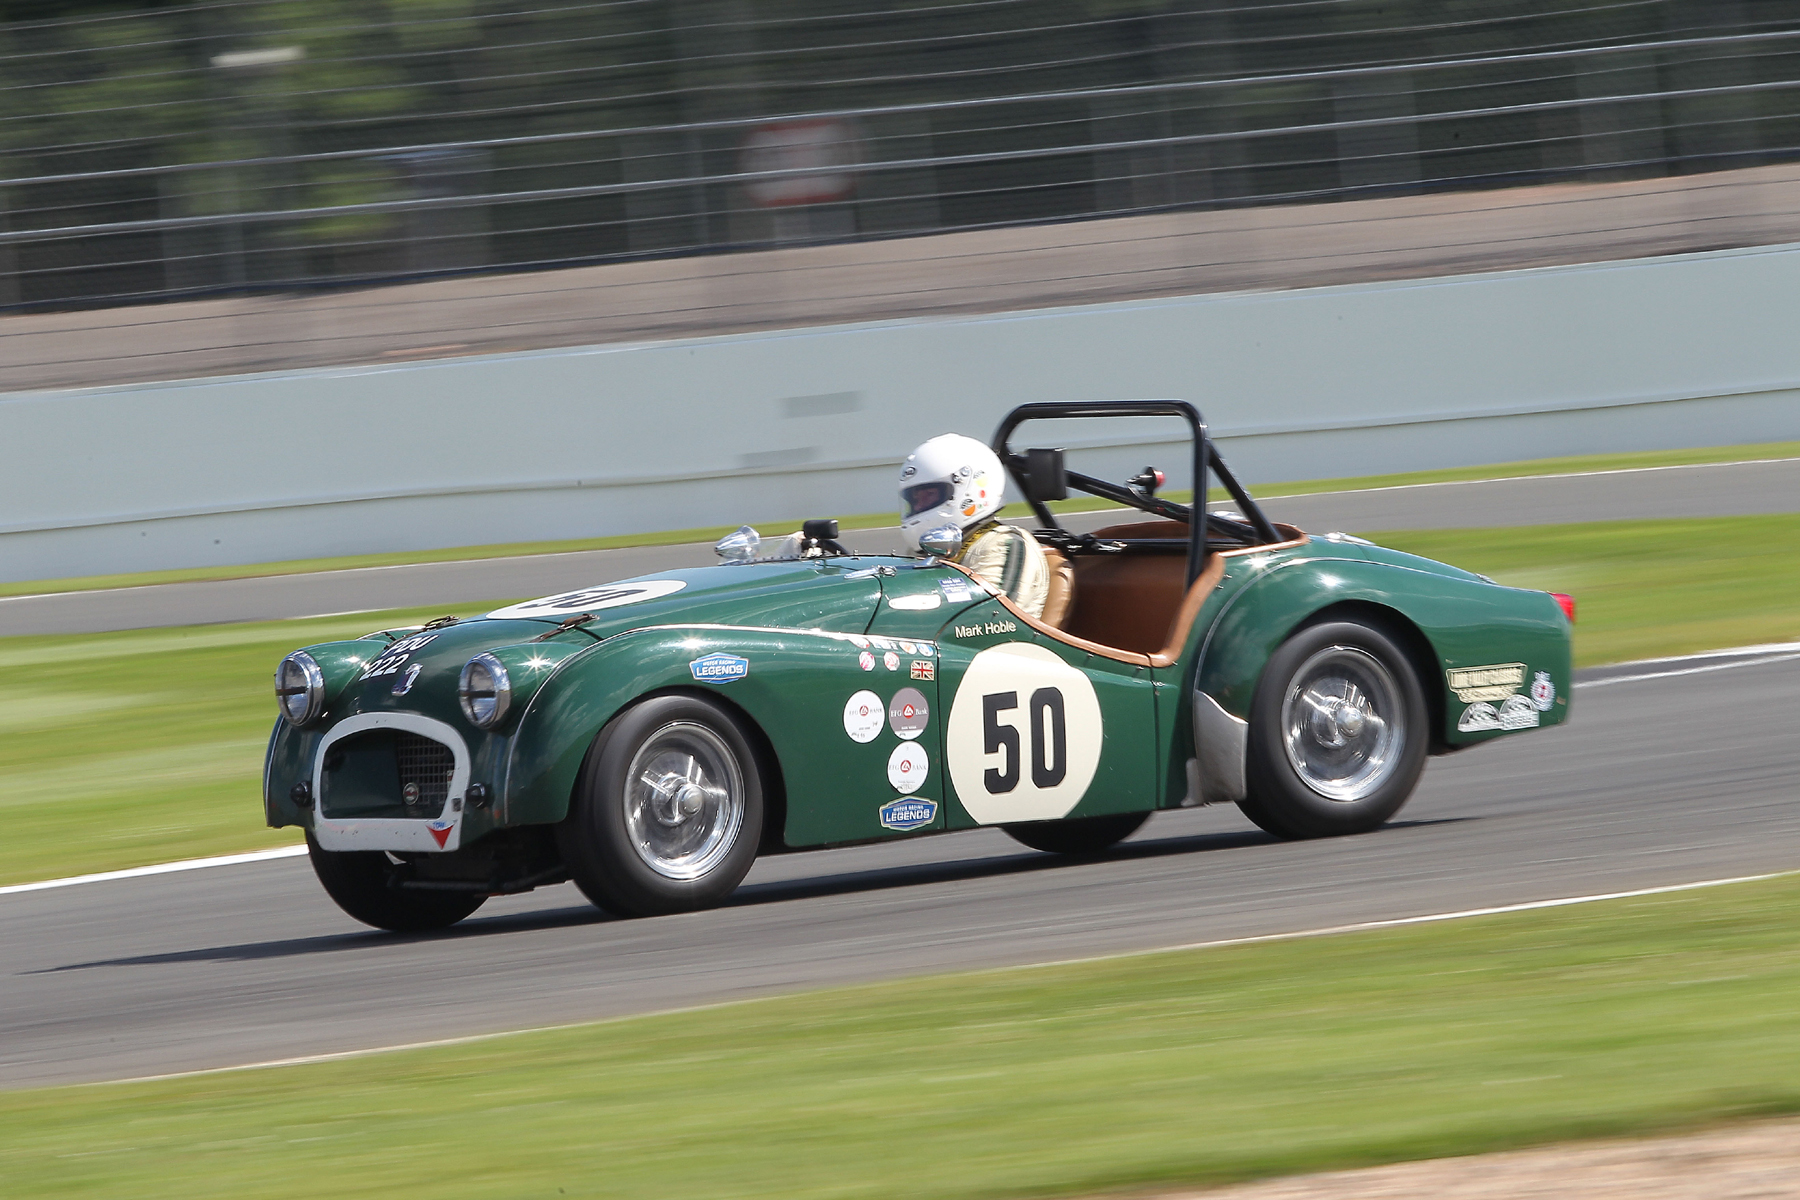 Mark Hoble with a touch of opposite lock in his Triumph TR2  Photo - Mick Walker